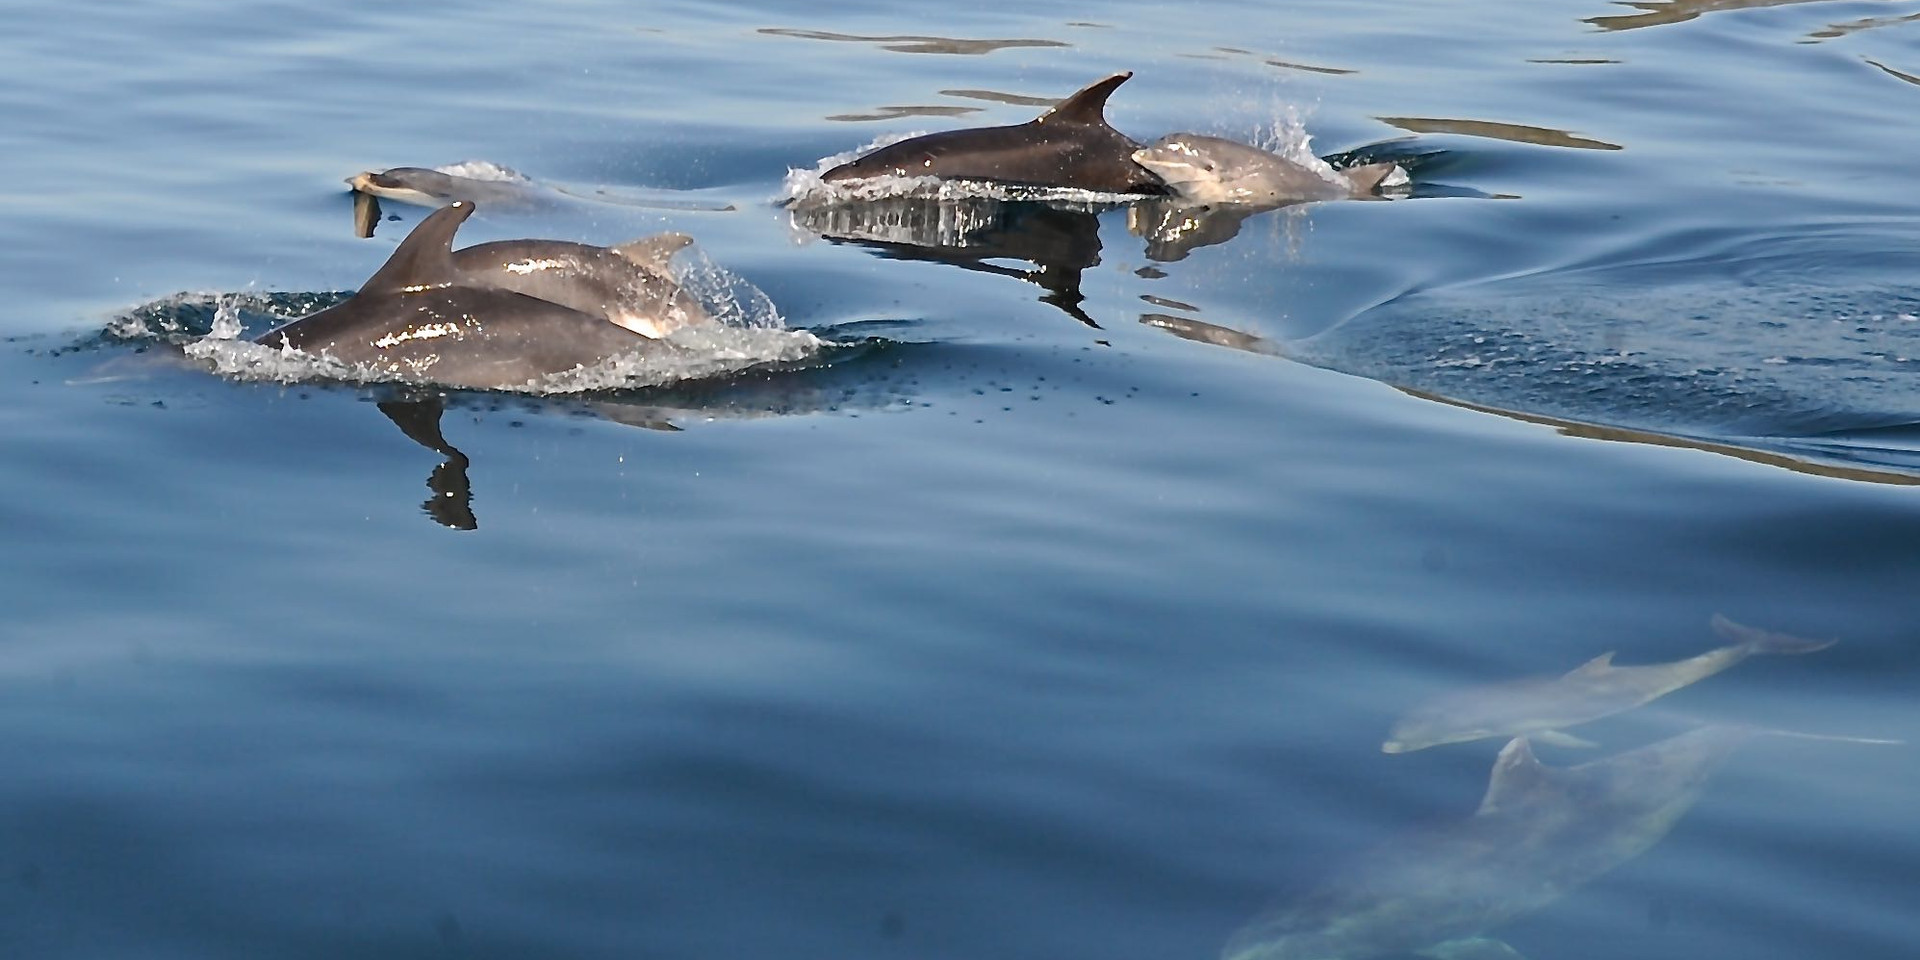 Dolphins by Orlik